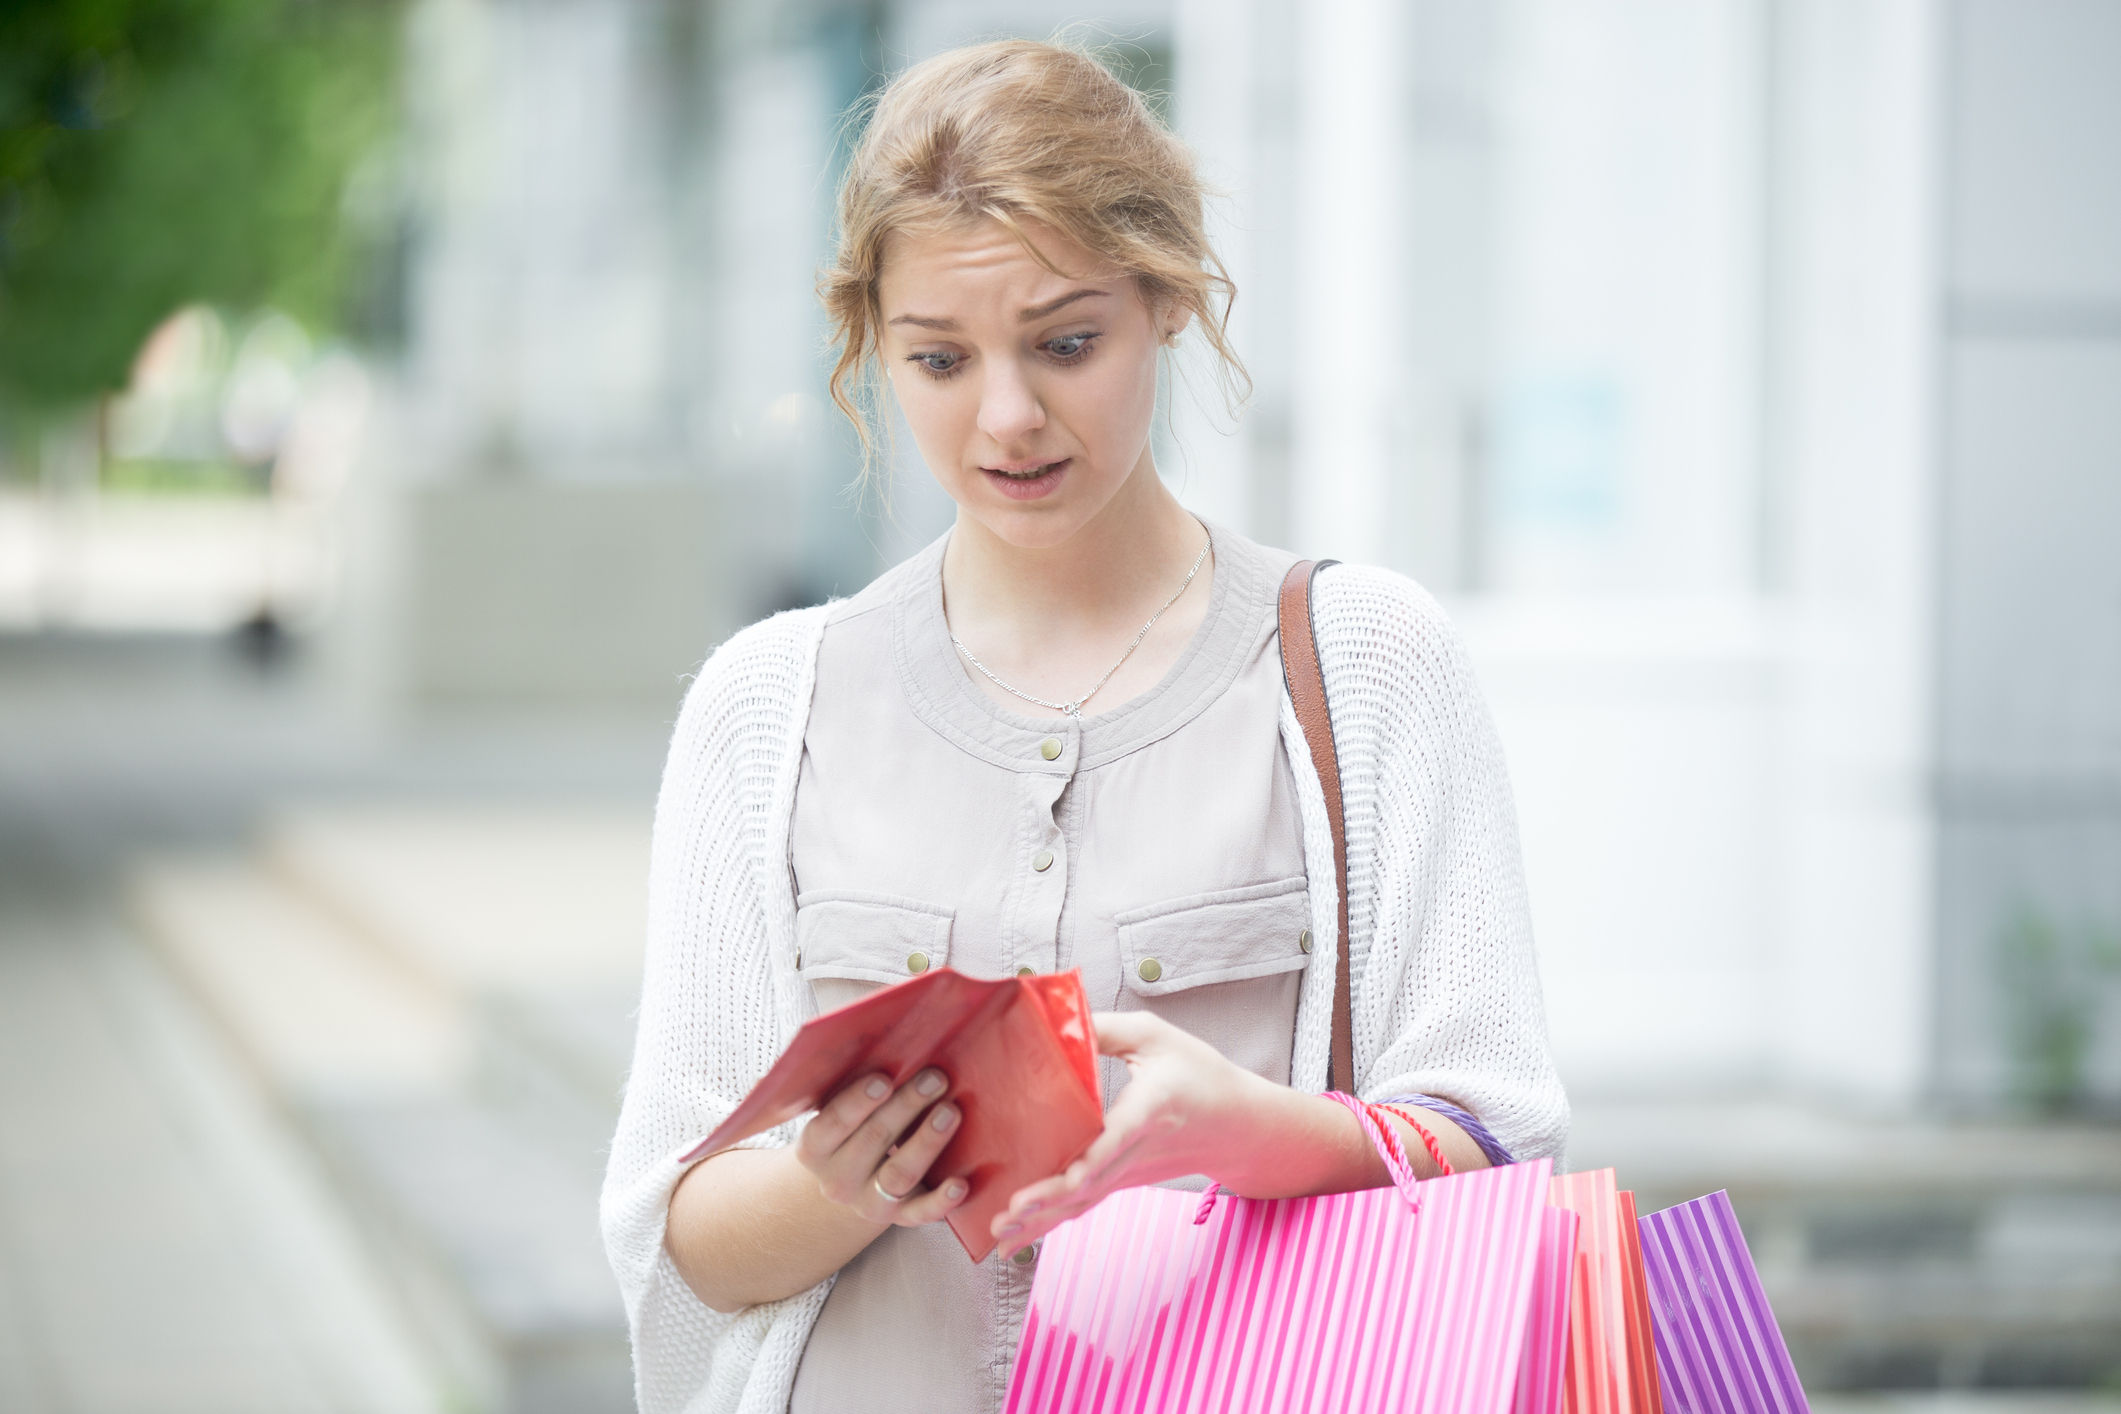 Young woman carrying shopping bags and looking into wallet with concern.